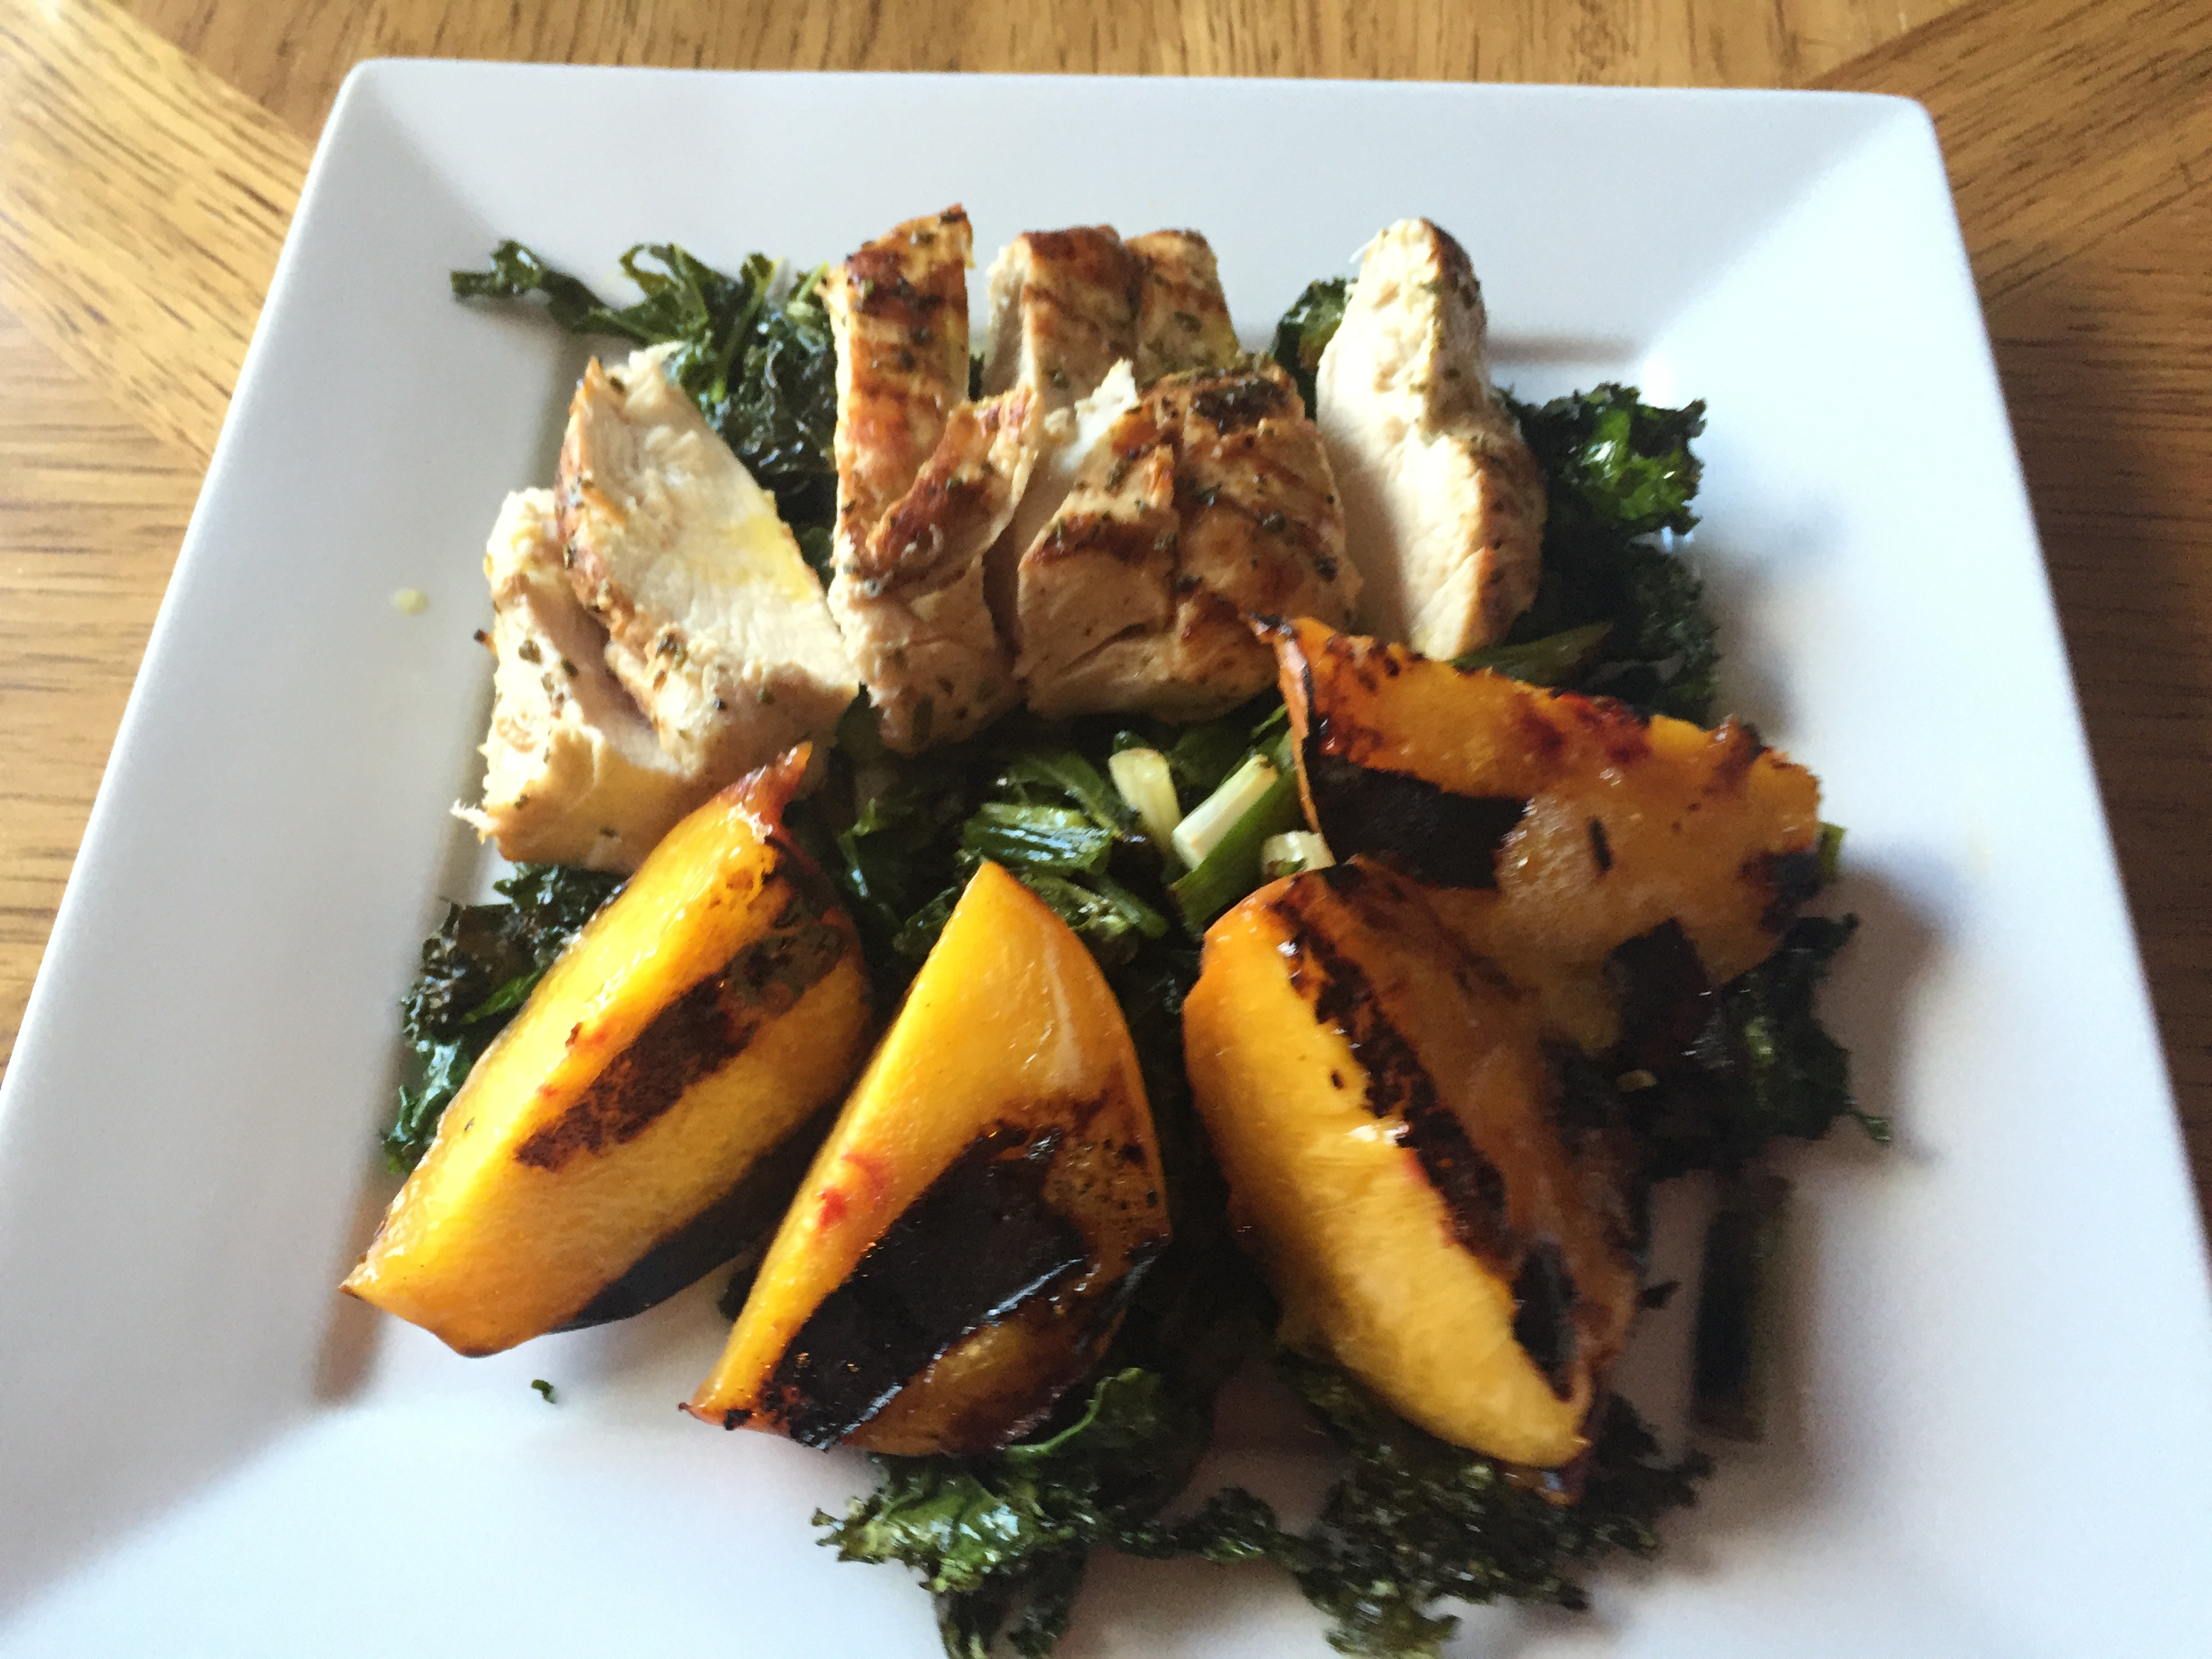 Summer Recipe (Grilled Peach Salad)